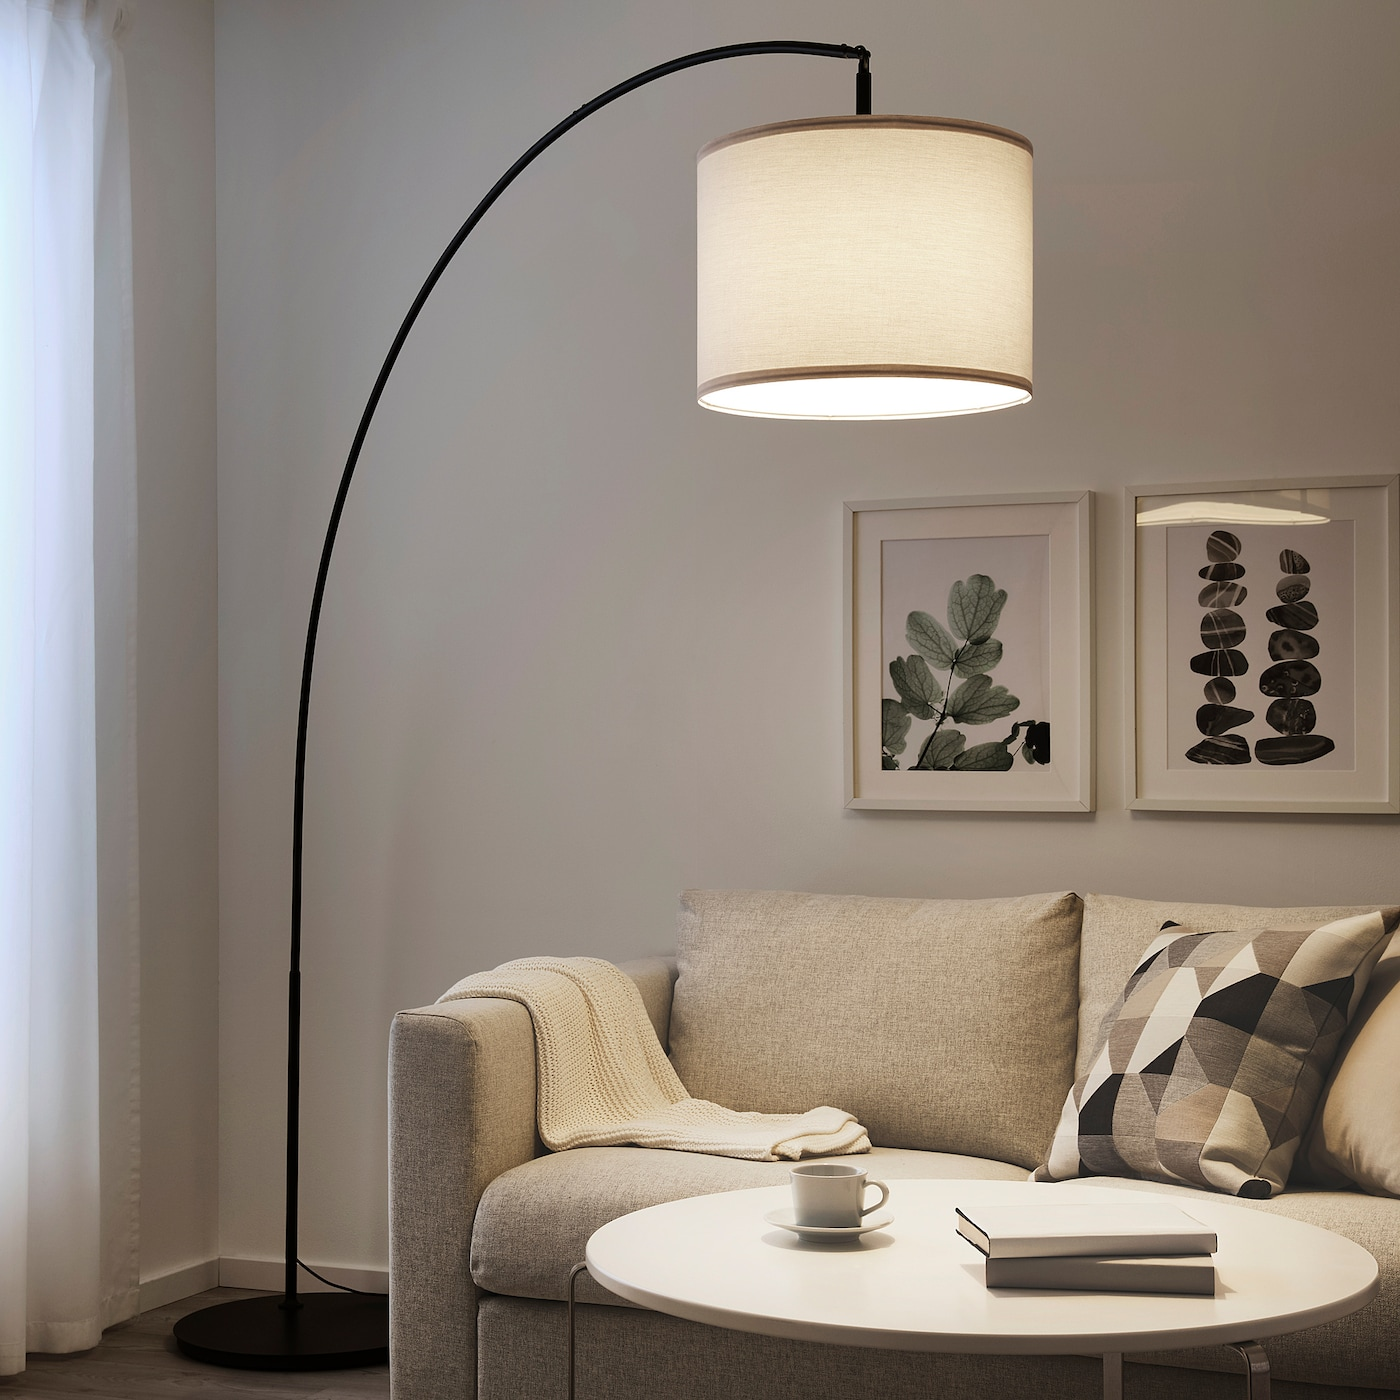 Picture of: Skaftet Floor Lamp Base Arched Black Ikea